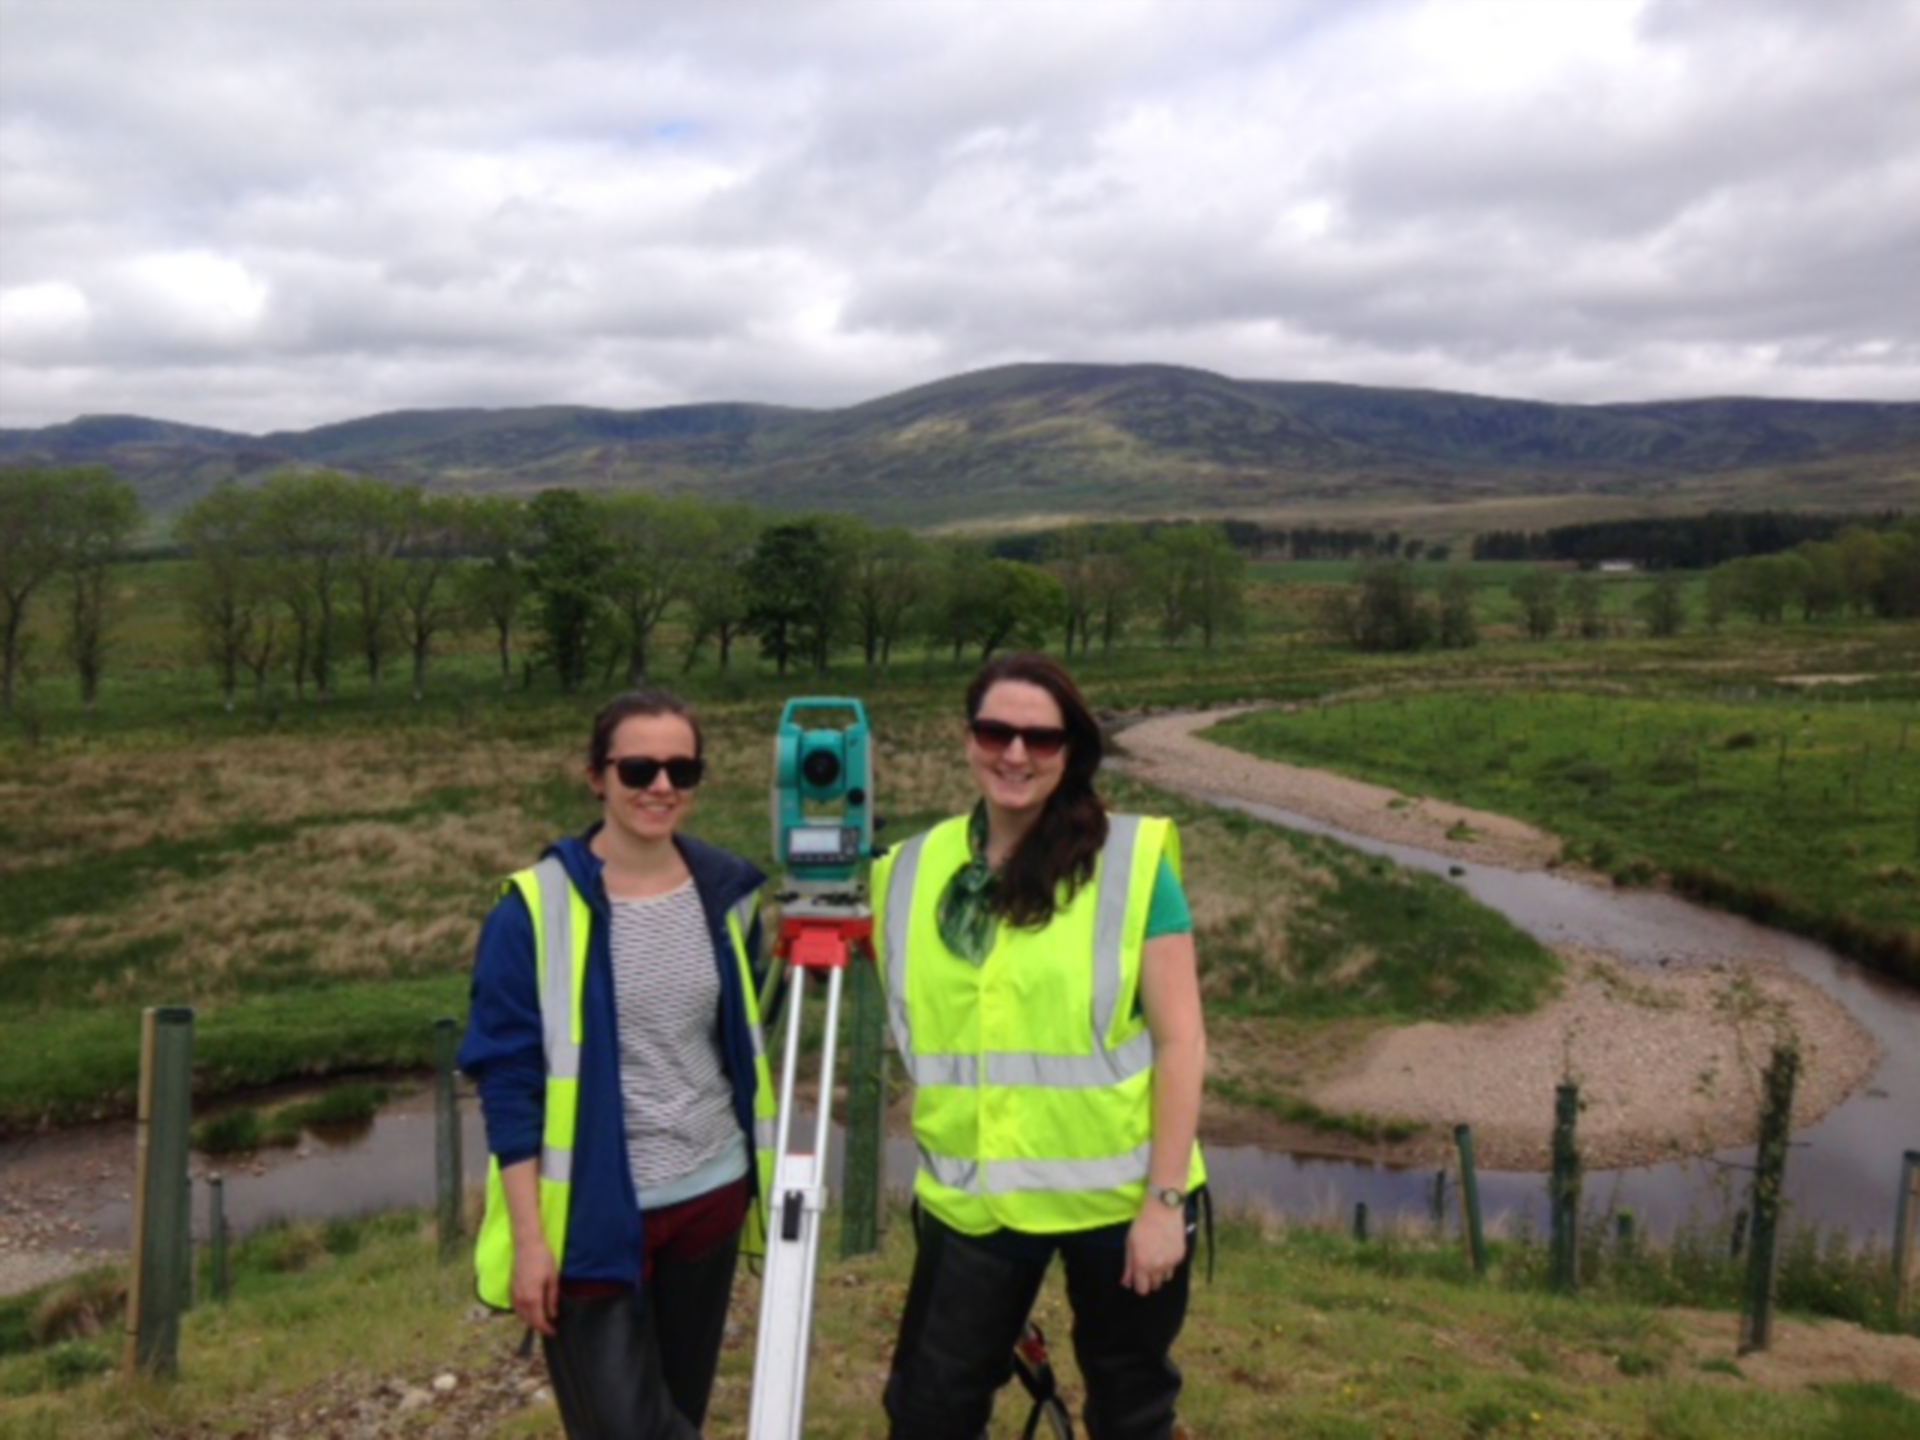 Student Mira Hanova and Dr Rebecca Wade using survey equipment to measure river erosion.